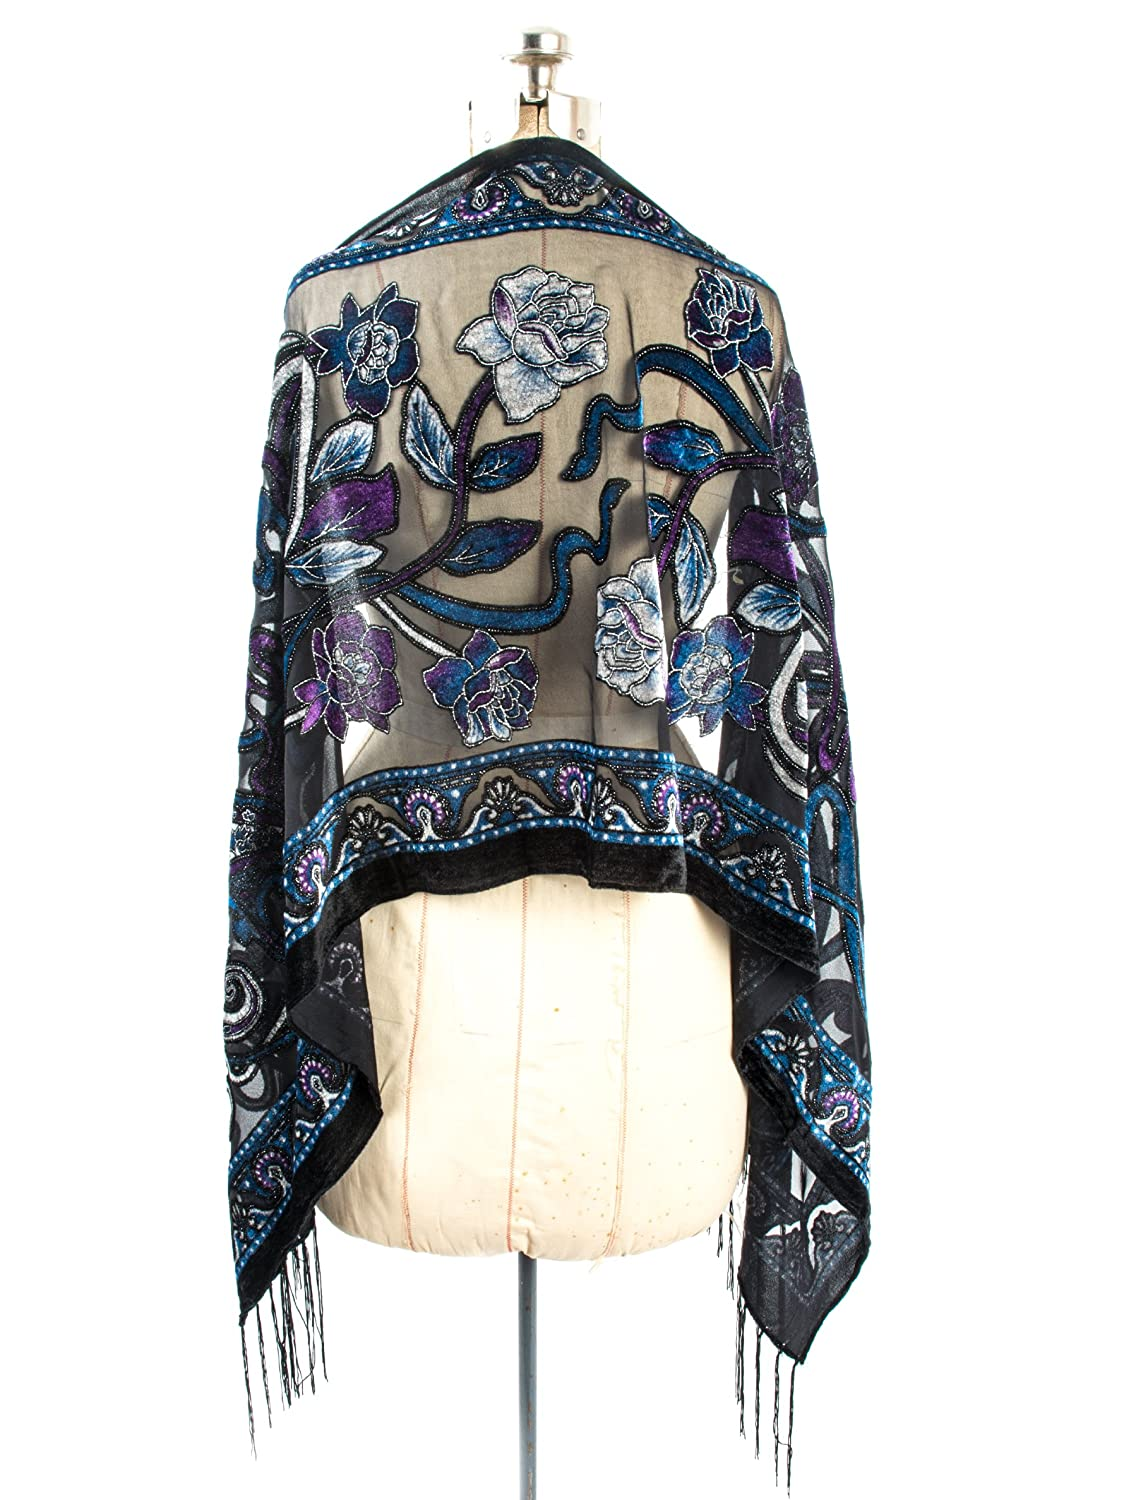 Downton Abbey Costumes Ideas Bohomonde Muriel Scarf Silk Art Nouveau Print Velvet Burnout Scarf with Fringe Ends $17.95 AT vintagedancer.com